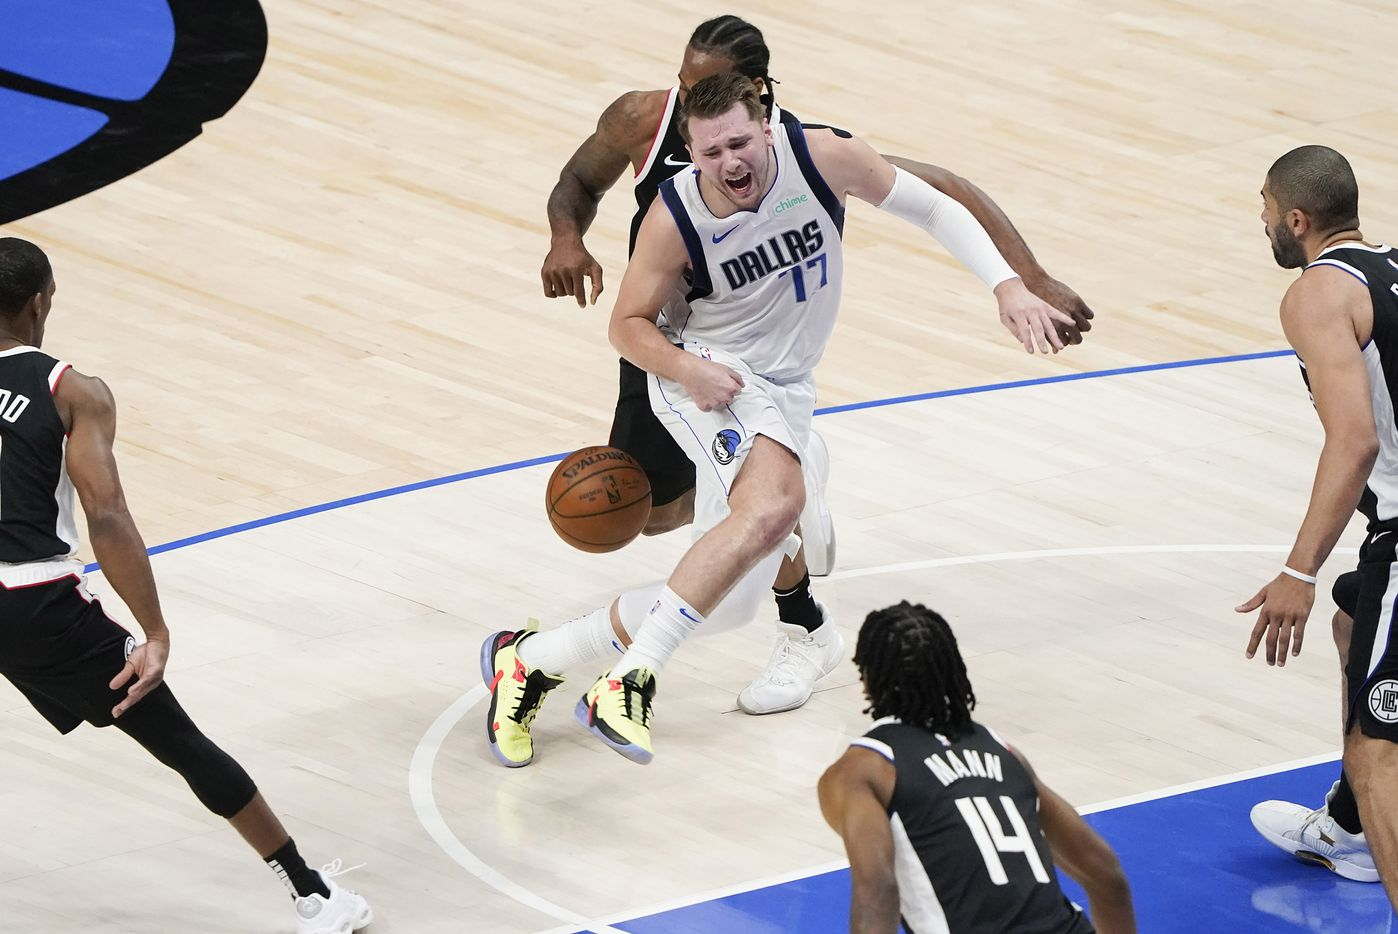 Dallas Mavericks guard Luka Doncic (77) has the ball knocked away by LA Clippers forward Kawhi Leonard (2) during the second quarter of an NBA playoff basketball game at American Airlines Center on Sunday, May 30, 2021, in Dallas.